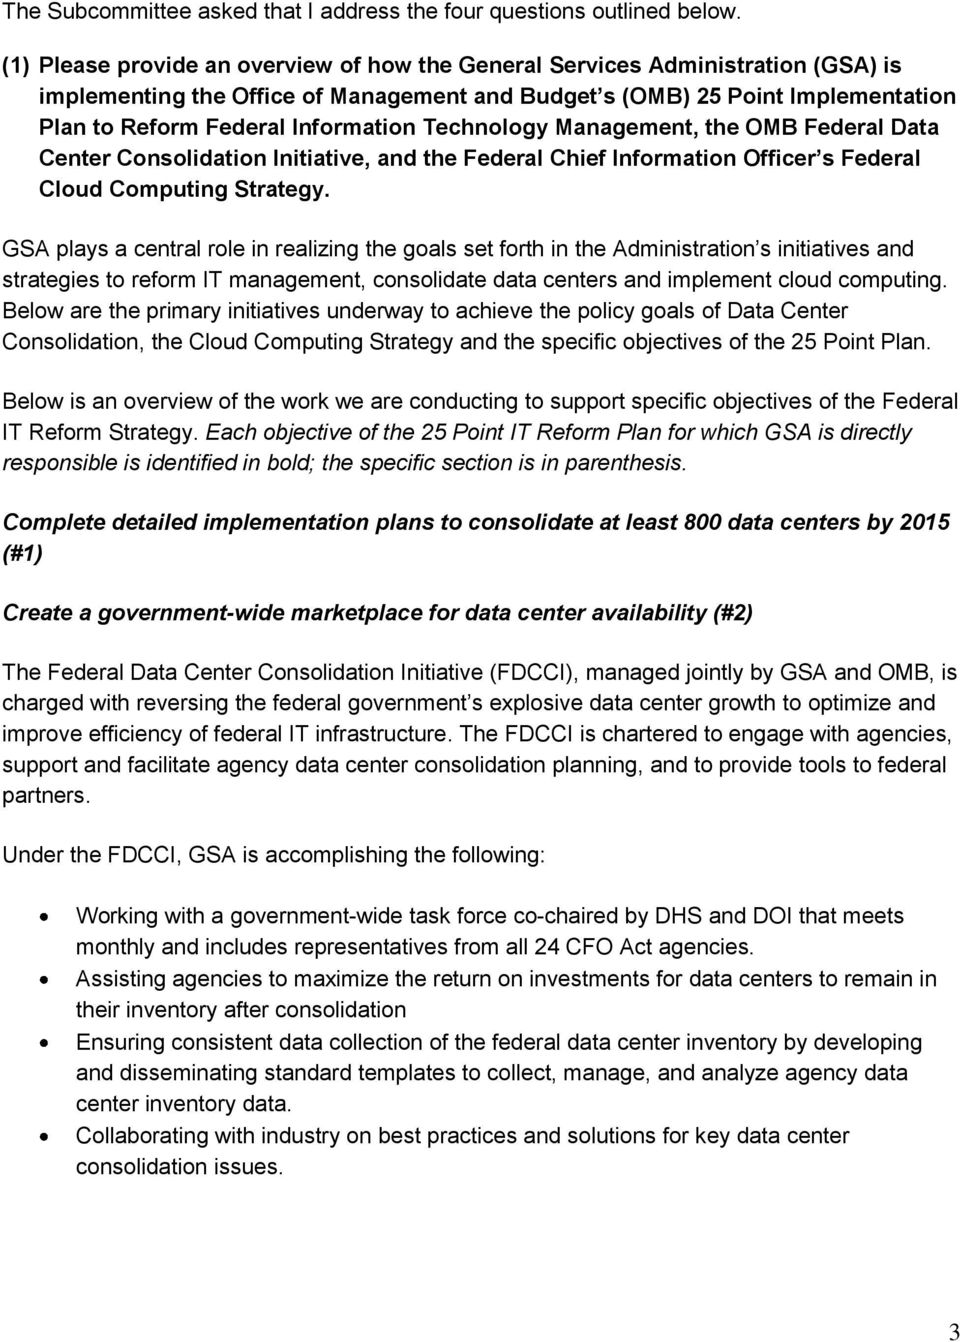 Technology Management, the OMB Federal Data Center Consolidation Initiative, and the Federal Chief Information Officer s Federal Cloud Computing Strategy.